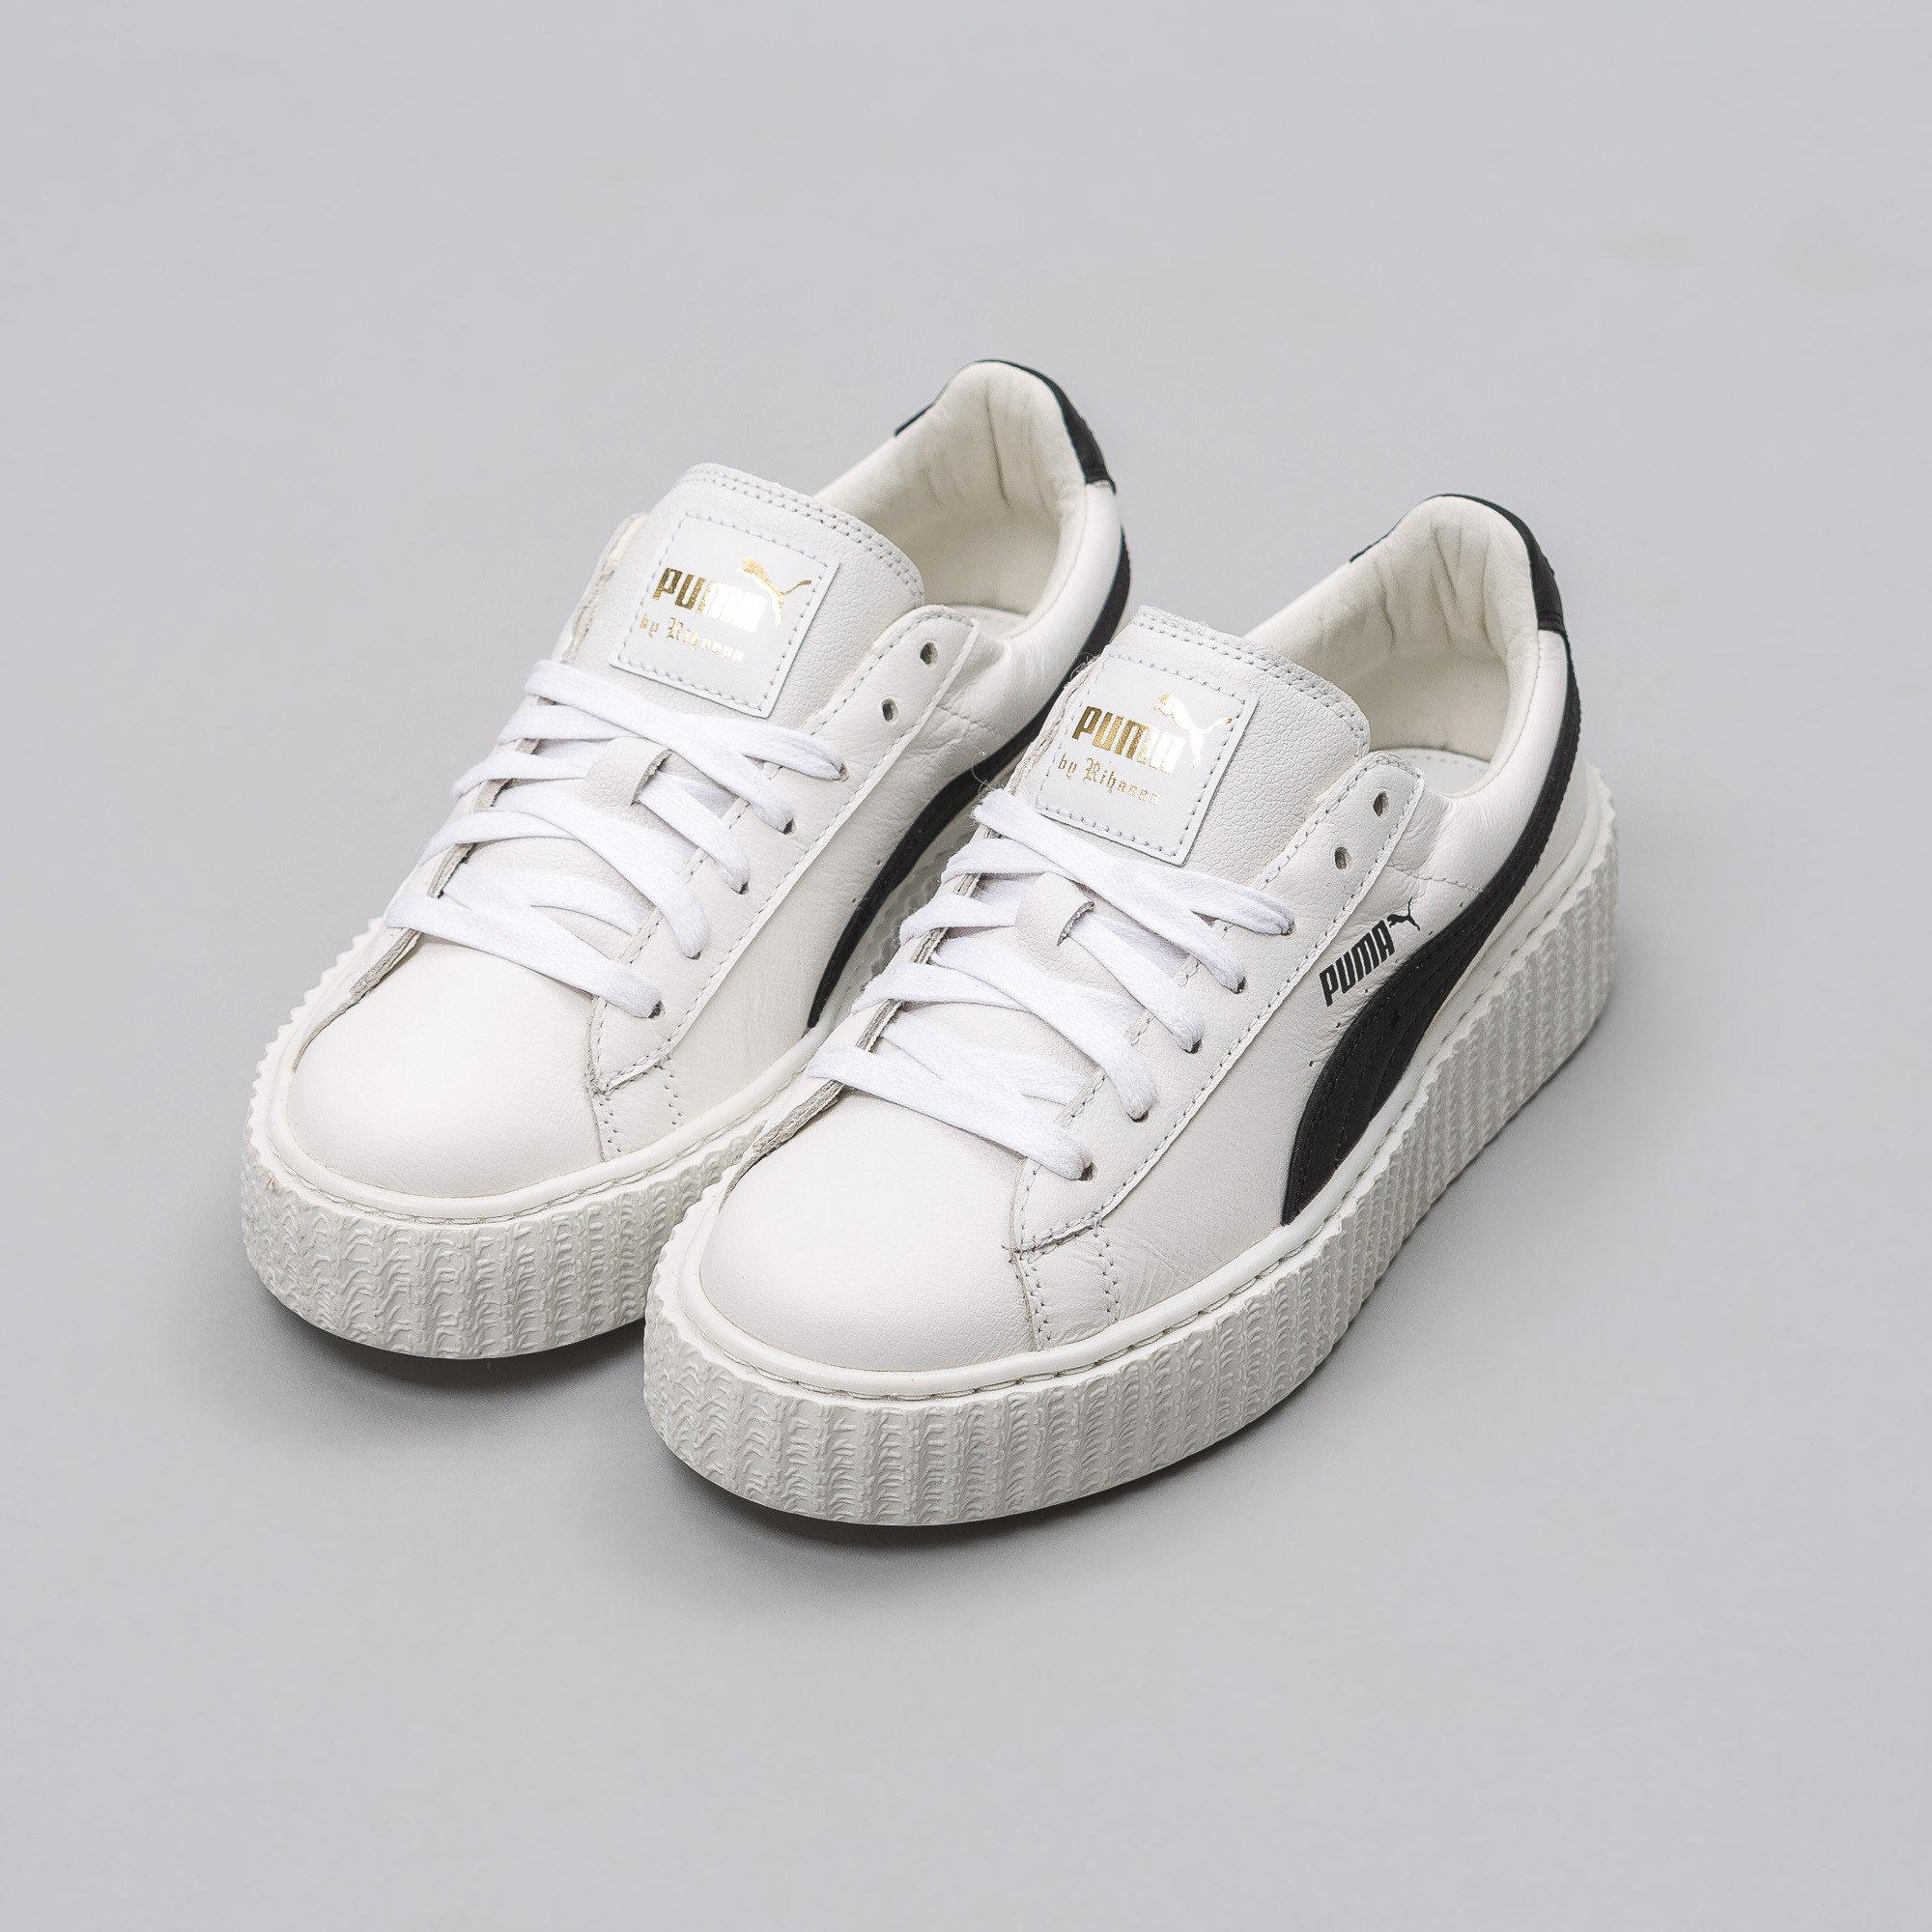 purchase cheap 4013d 72bab Lyst - Puma Fenty Creeper In White/black (womens) in White ...